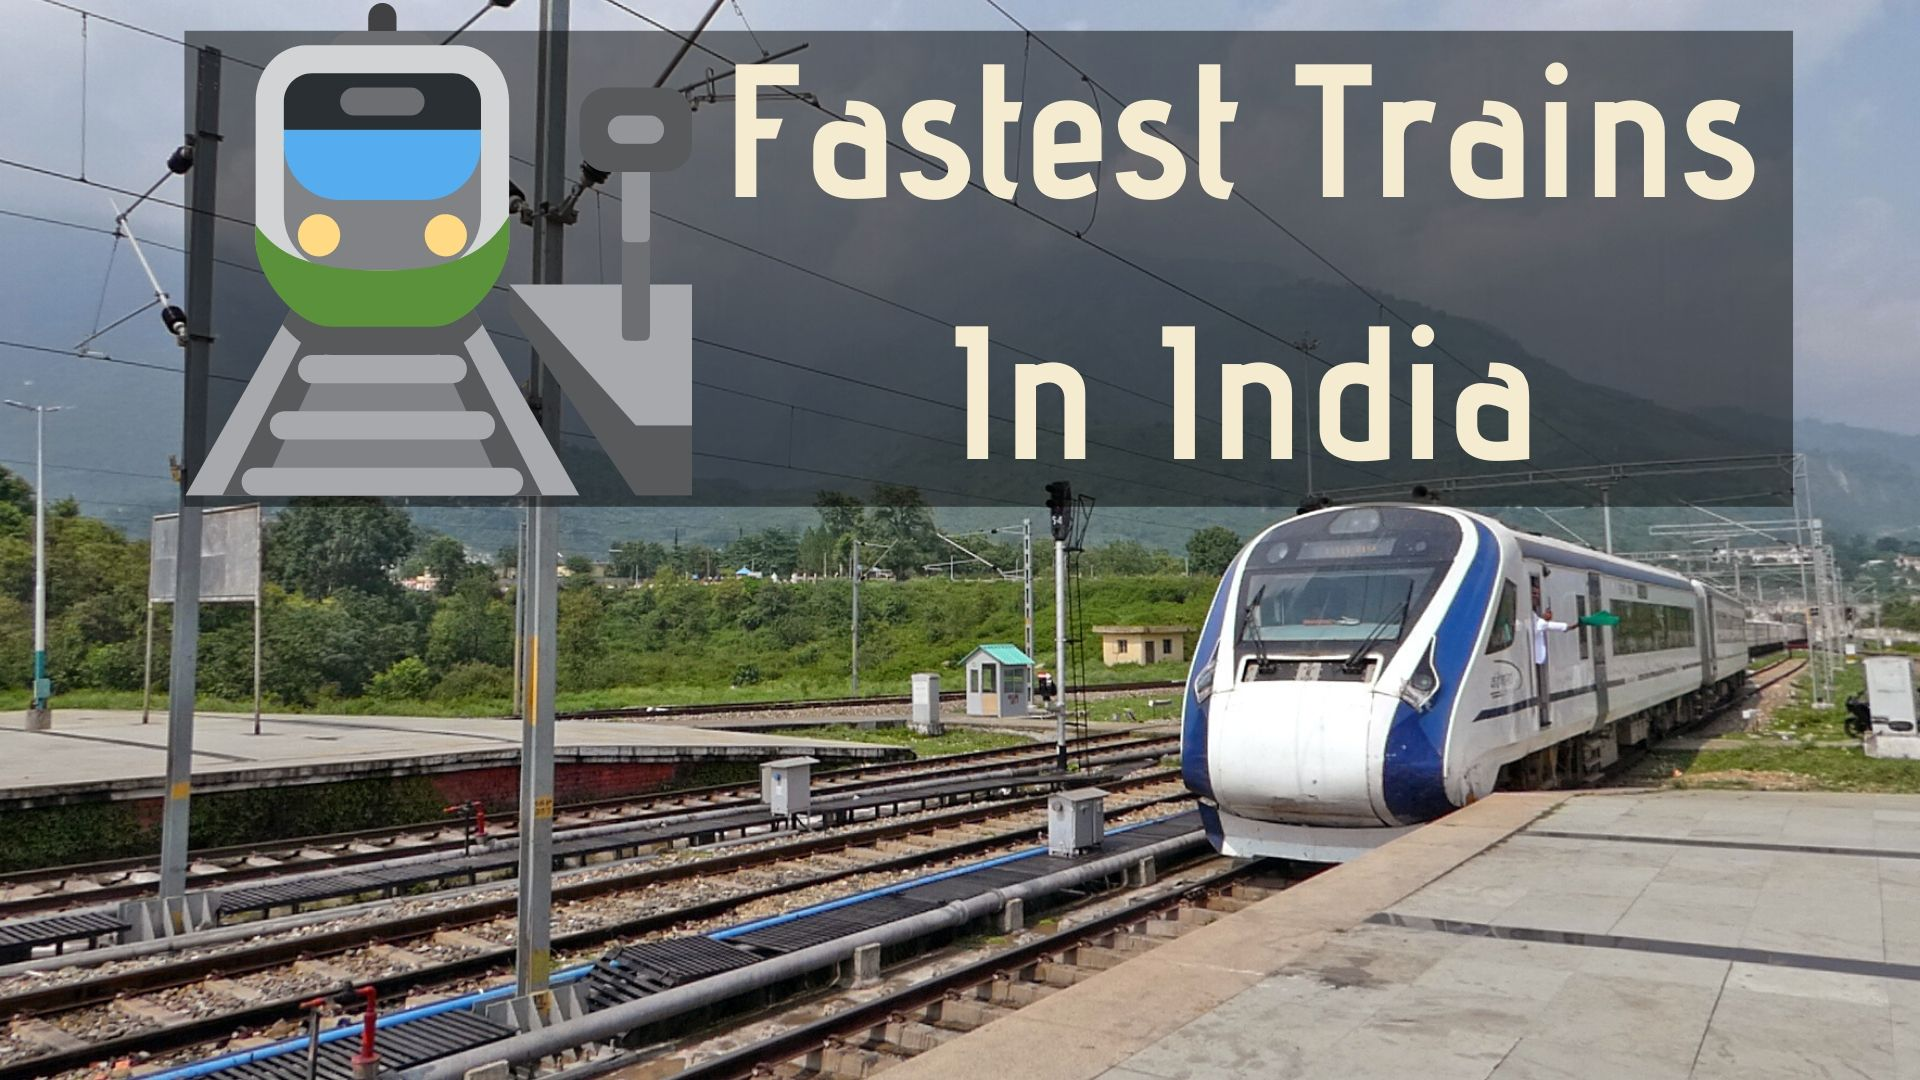 Top Fastest Trains In India